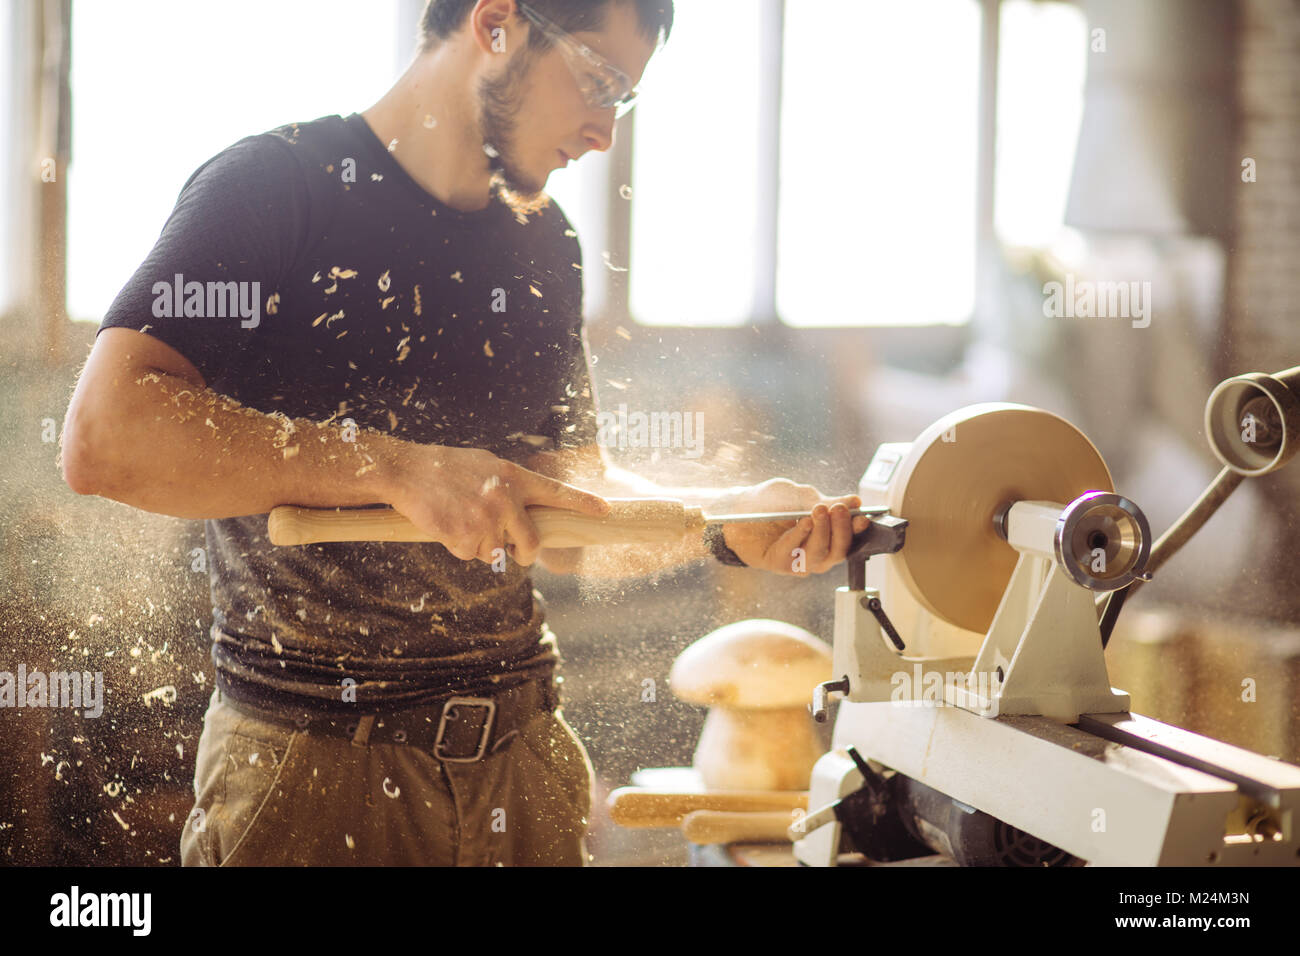 man working at small wood lathe, an artisan carves piece of wood - Stock Image